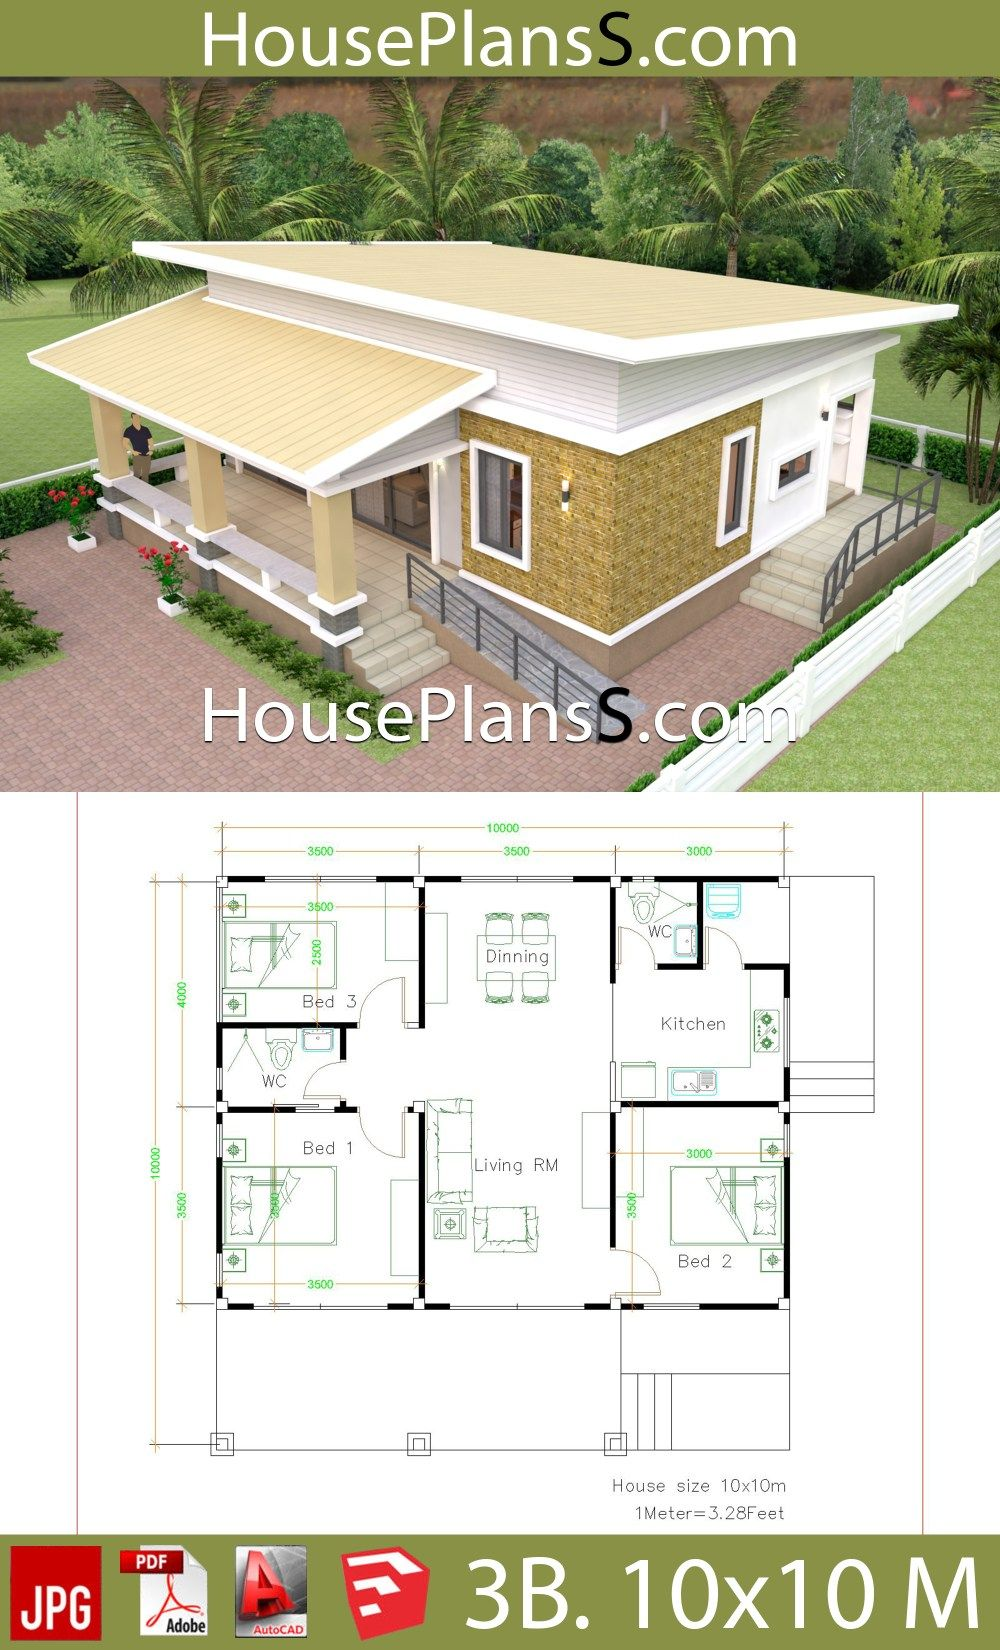 Find Your House Plans Below House Plans 3d House Construction Plan Small House Design Plans Affordable House Plans